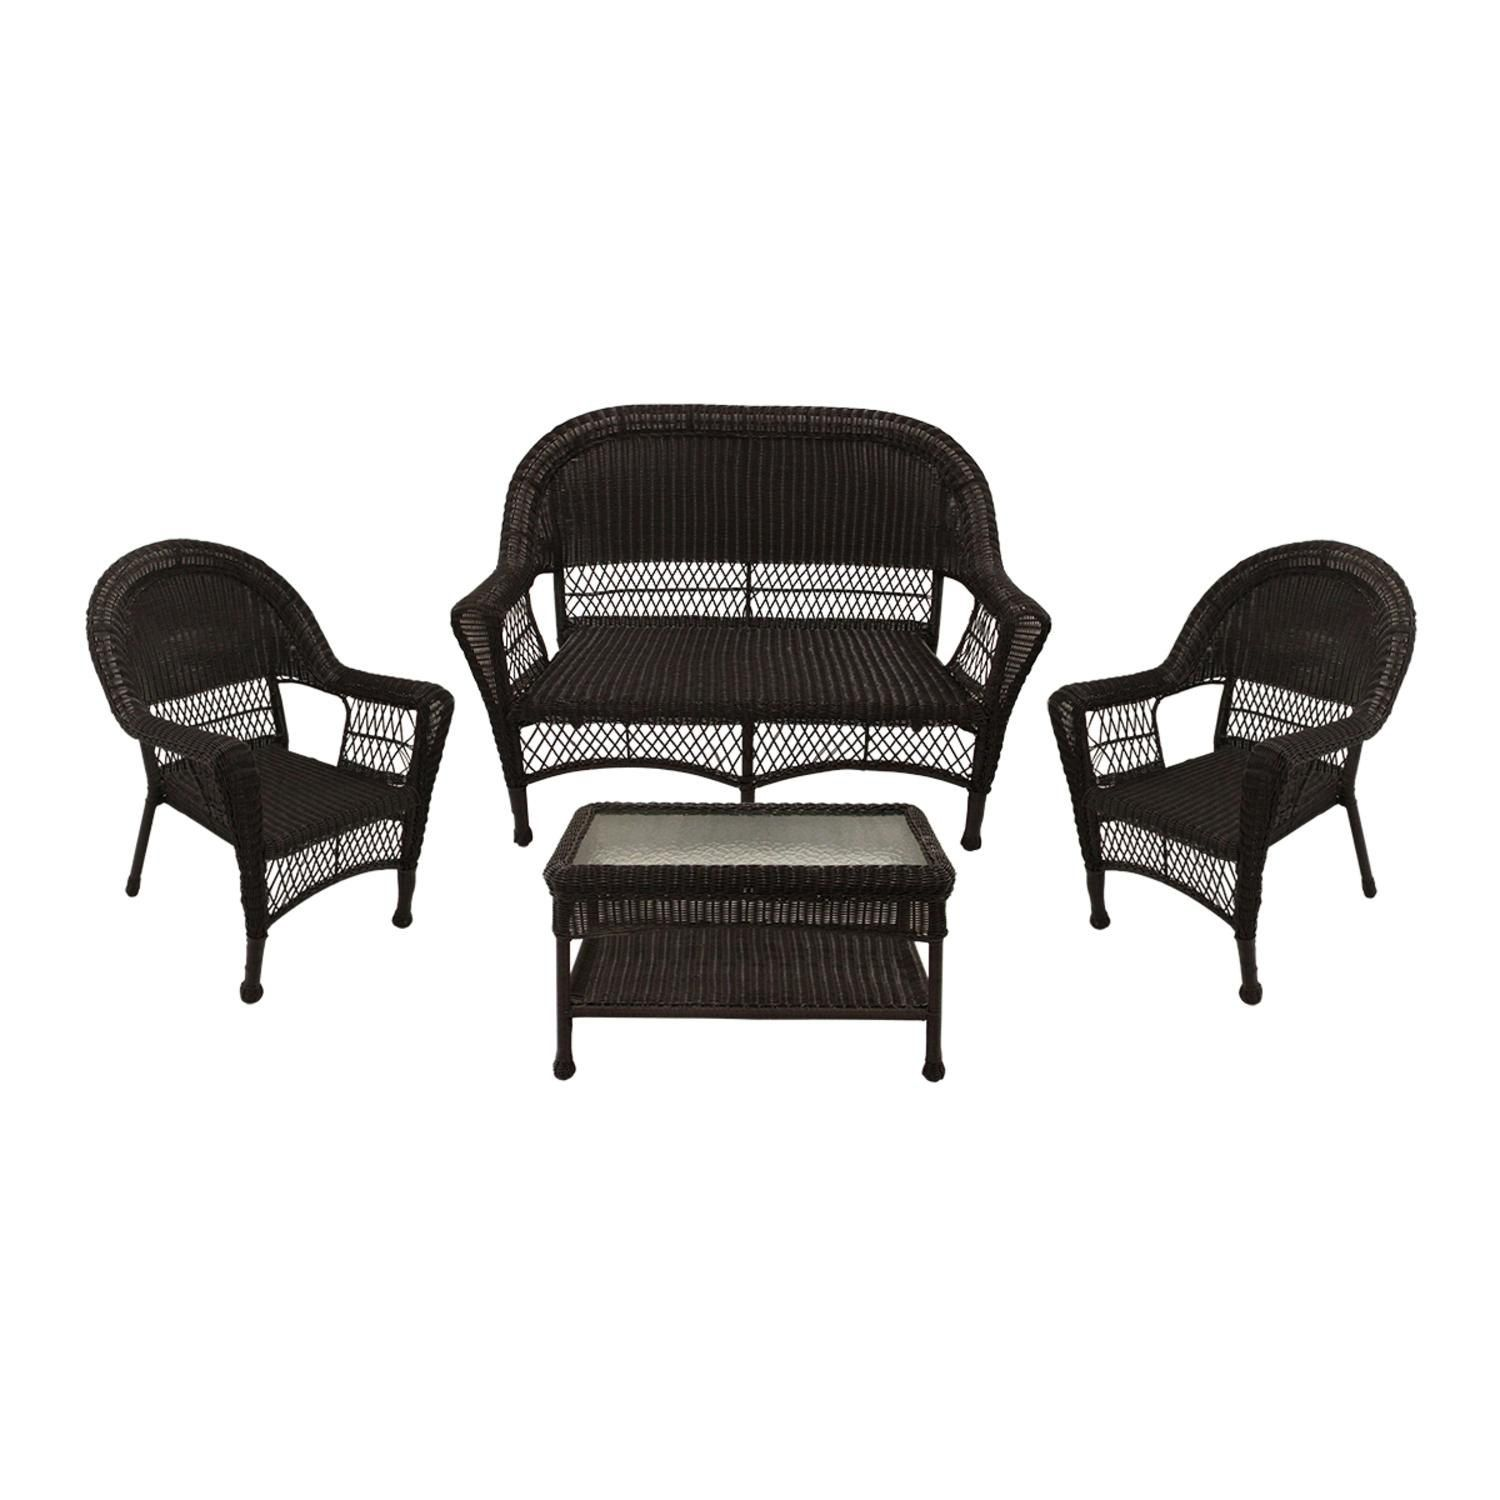 4 Piece Brown Resin Wicker Patio Furniture Set 2 Chairs